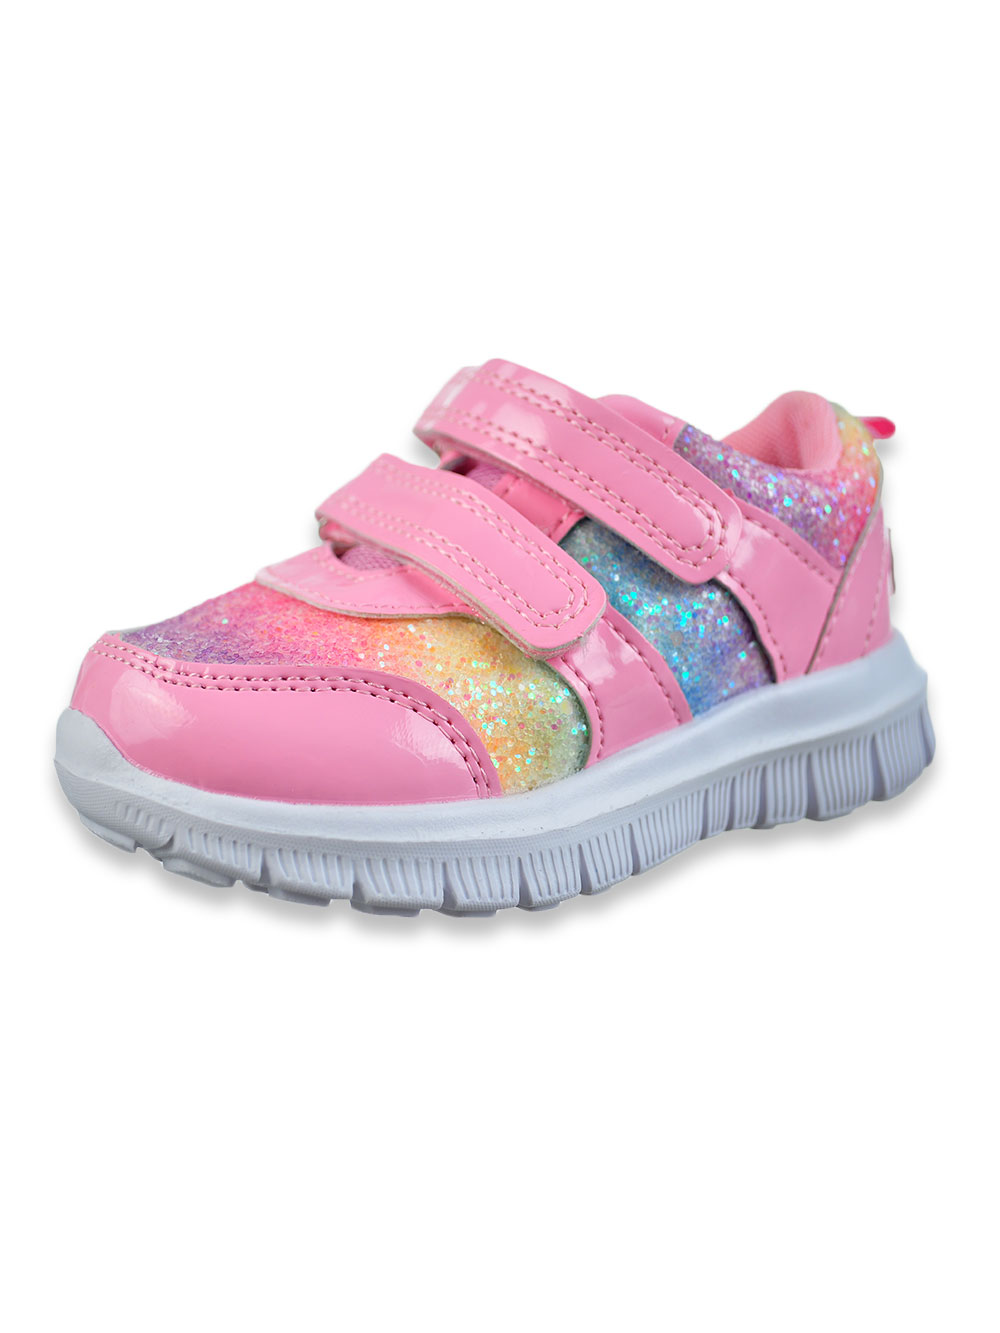 Girls' Glitter Sneakers